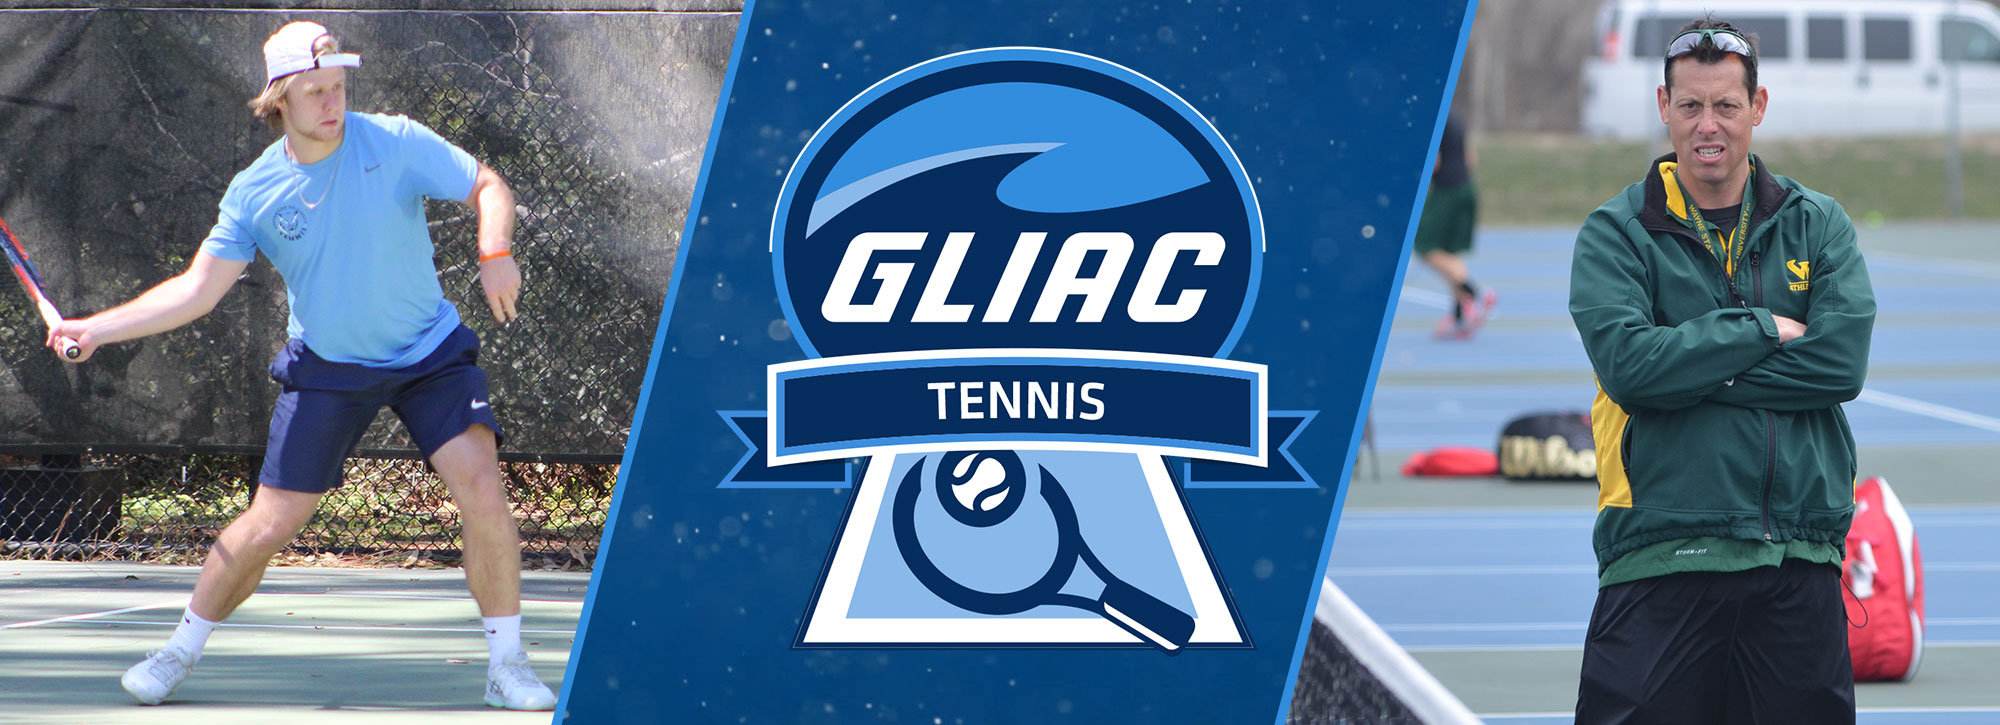 Northwood's Femonkov Earns GLIAC Men's Tennis Player & Freshman of the Year Honors